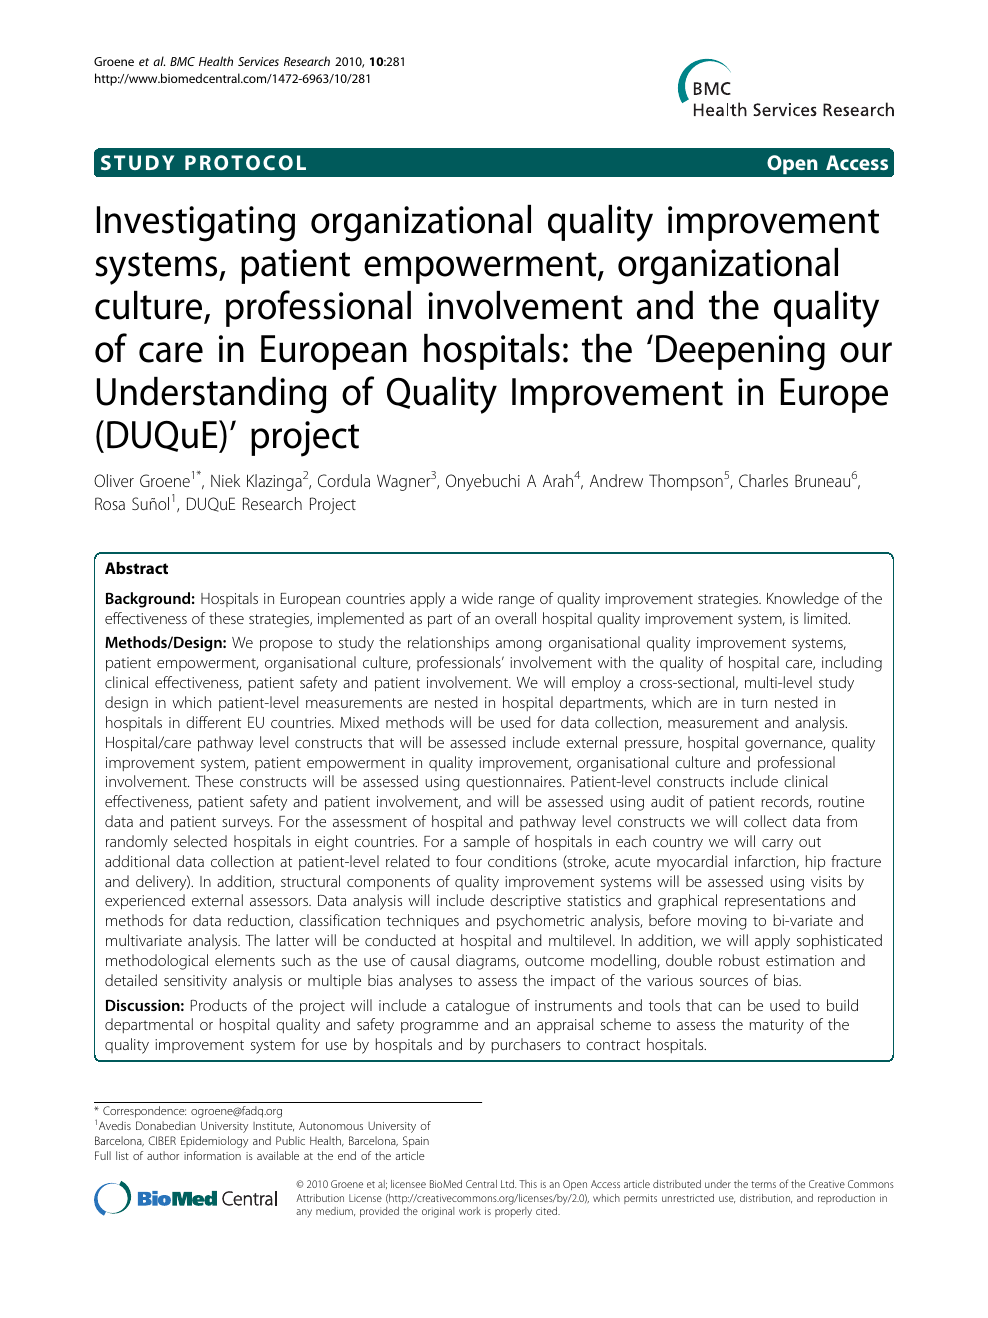 Investigating organizational quality improvement systems, patient